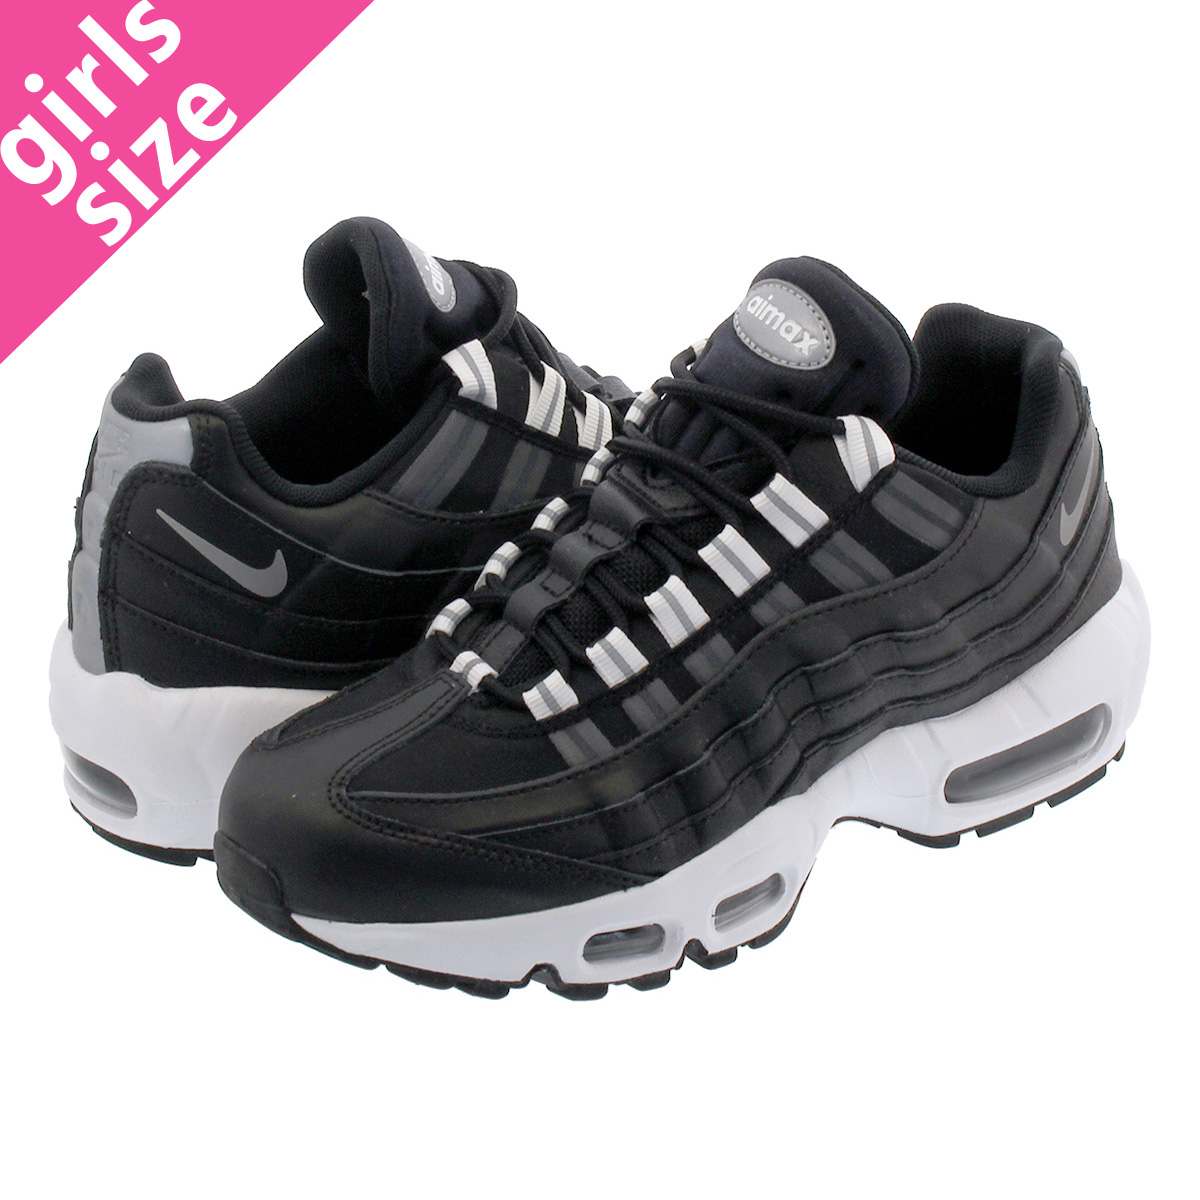 competitive price bccc7 eae09 NIKE WMNS AIR MAX 95 Nike women Air Max 95 BLACK REFLECT SILVER WHITE  307,960-020